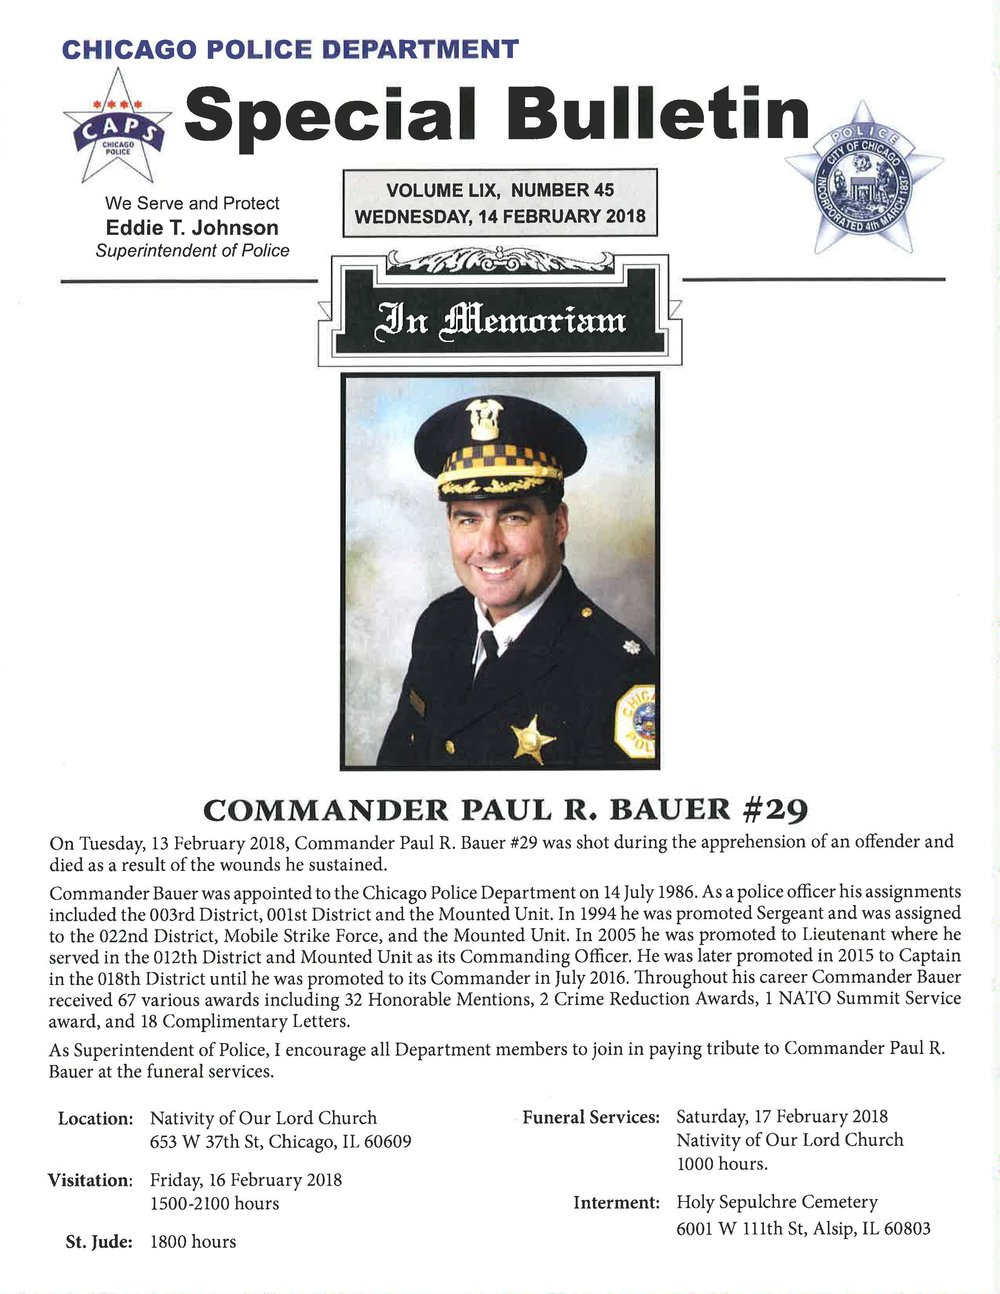 14-FEB-18-Special-Bulletin-for-Commander-Paul-Bauer.jpg